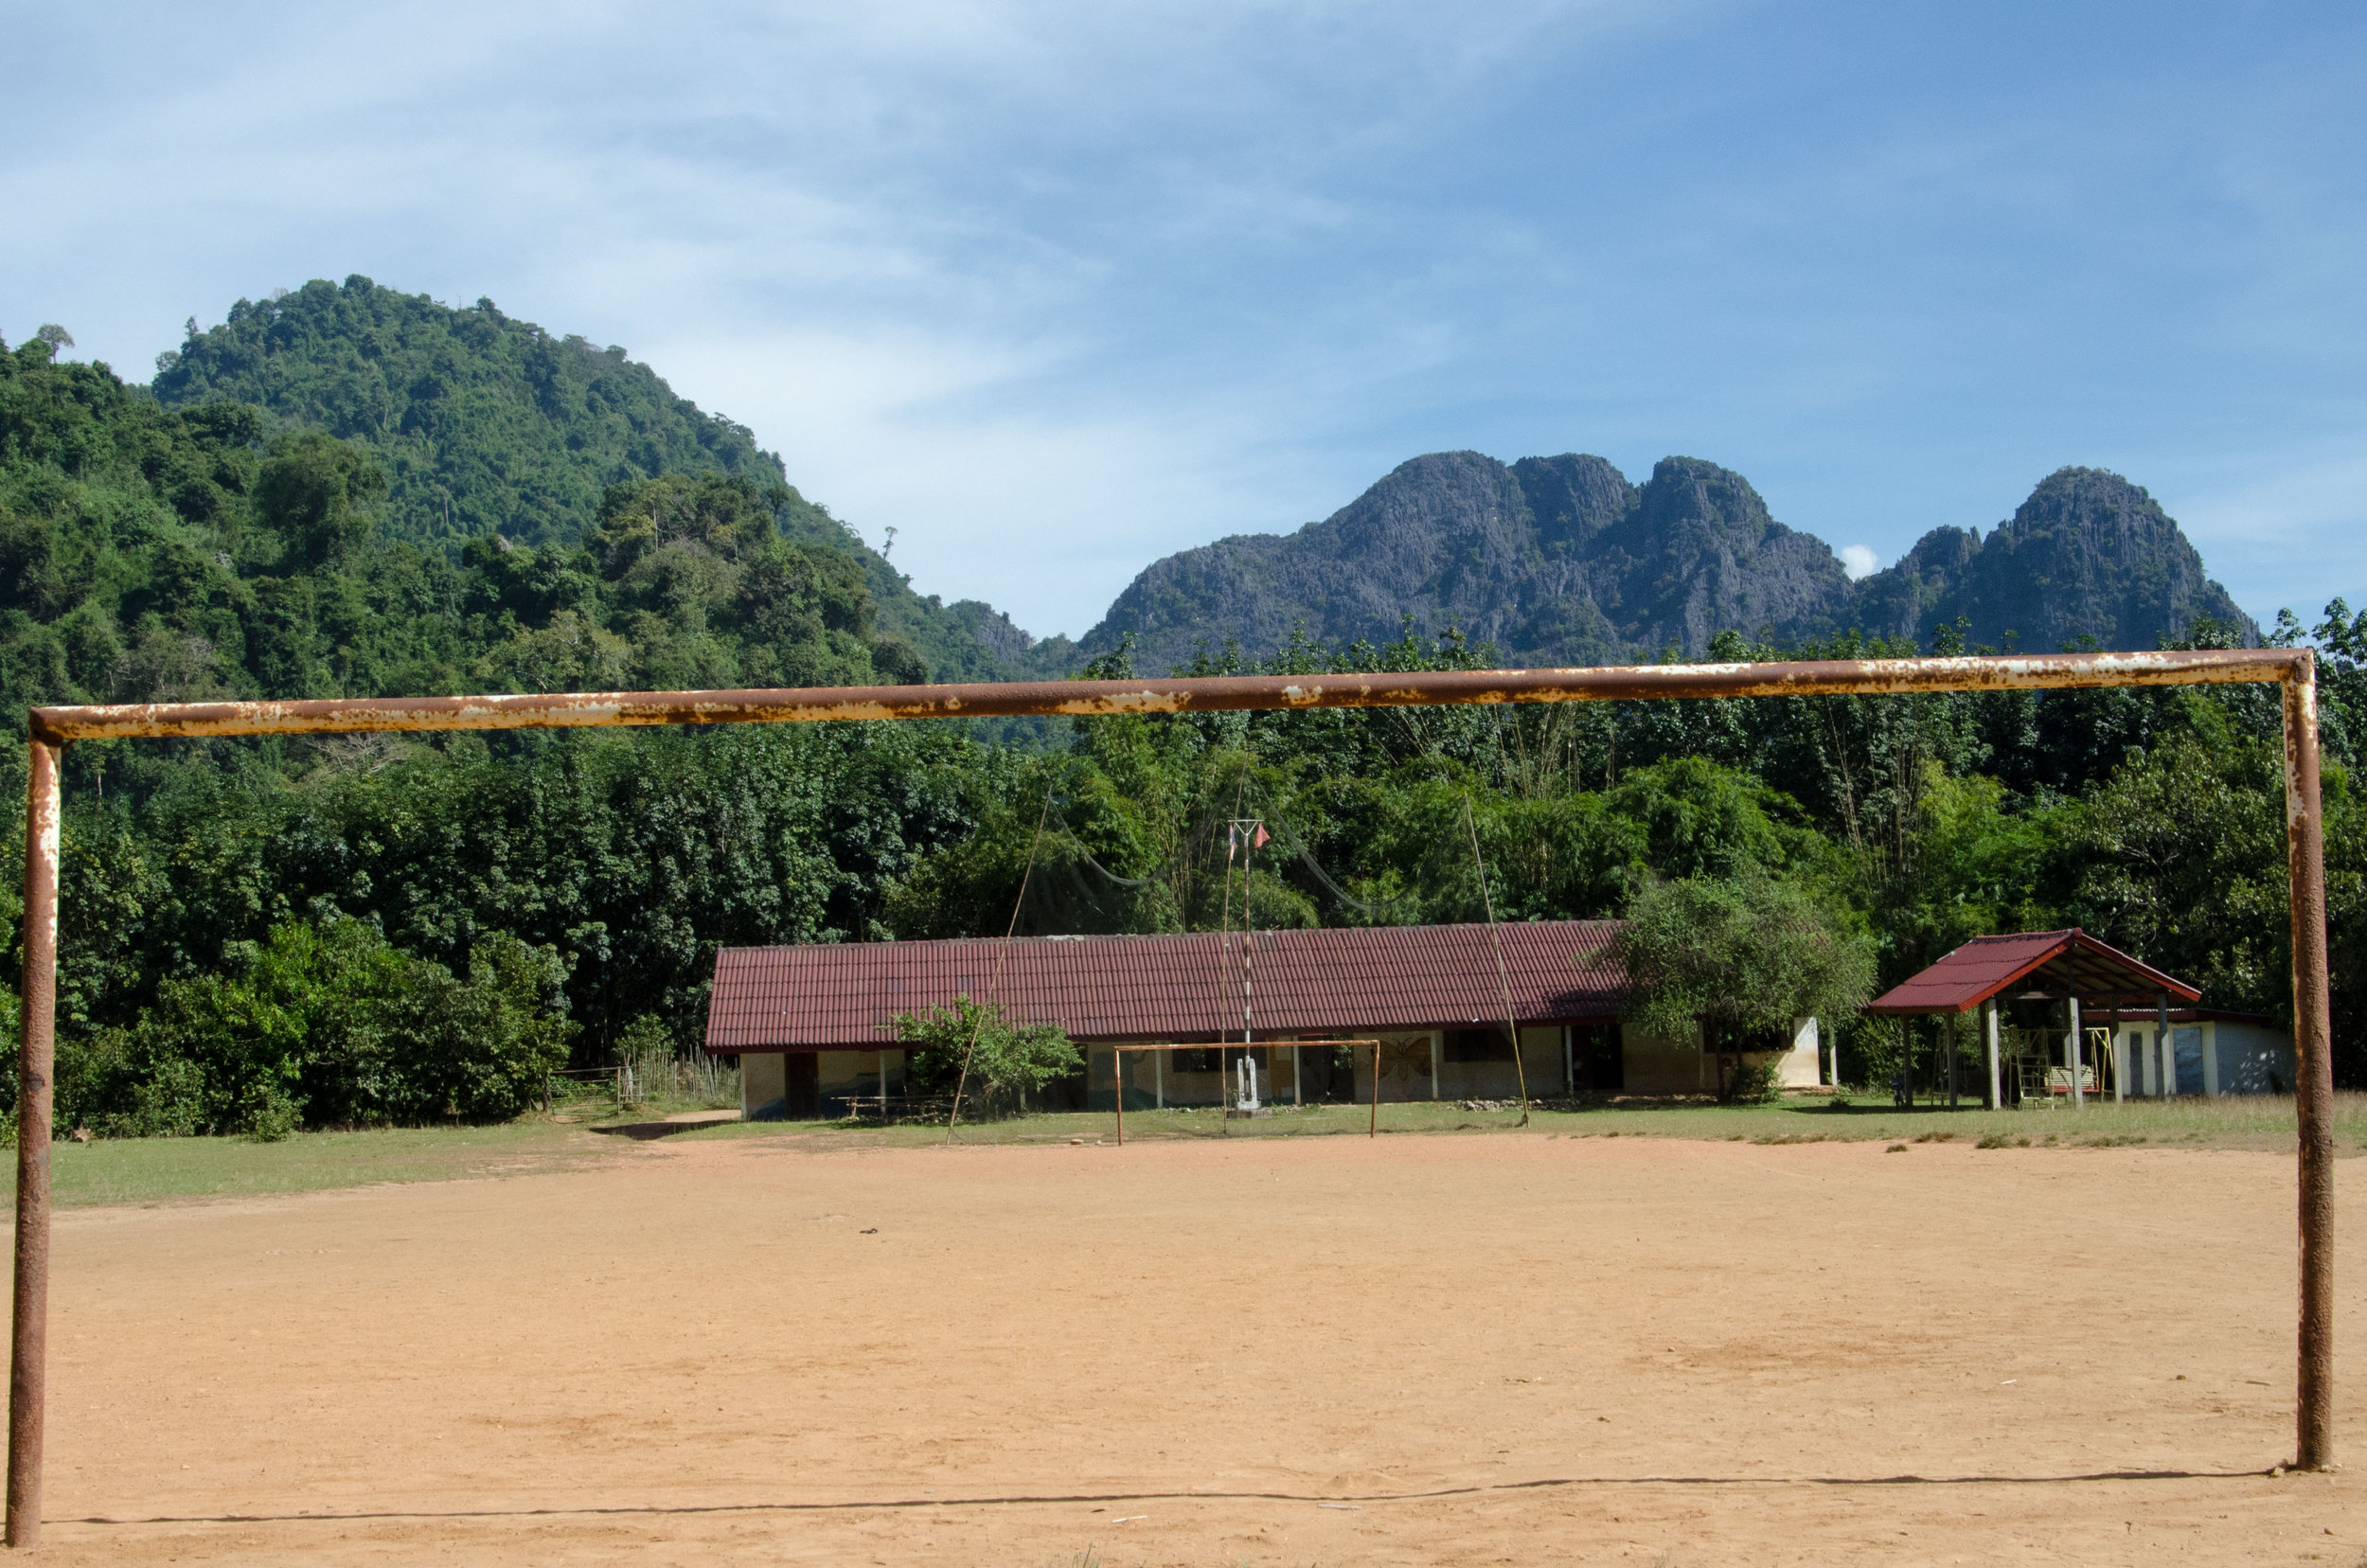 School, on route to Than Phu Kham, Vang Vieng, Laos, 29 Nov 2017.jpg